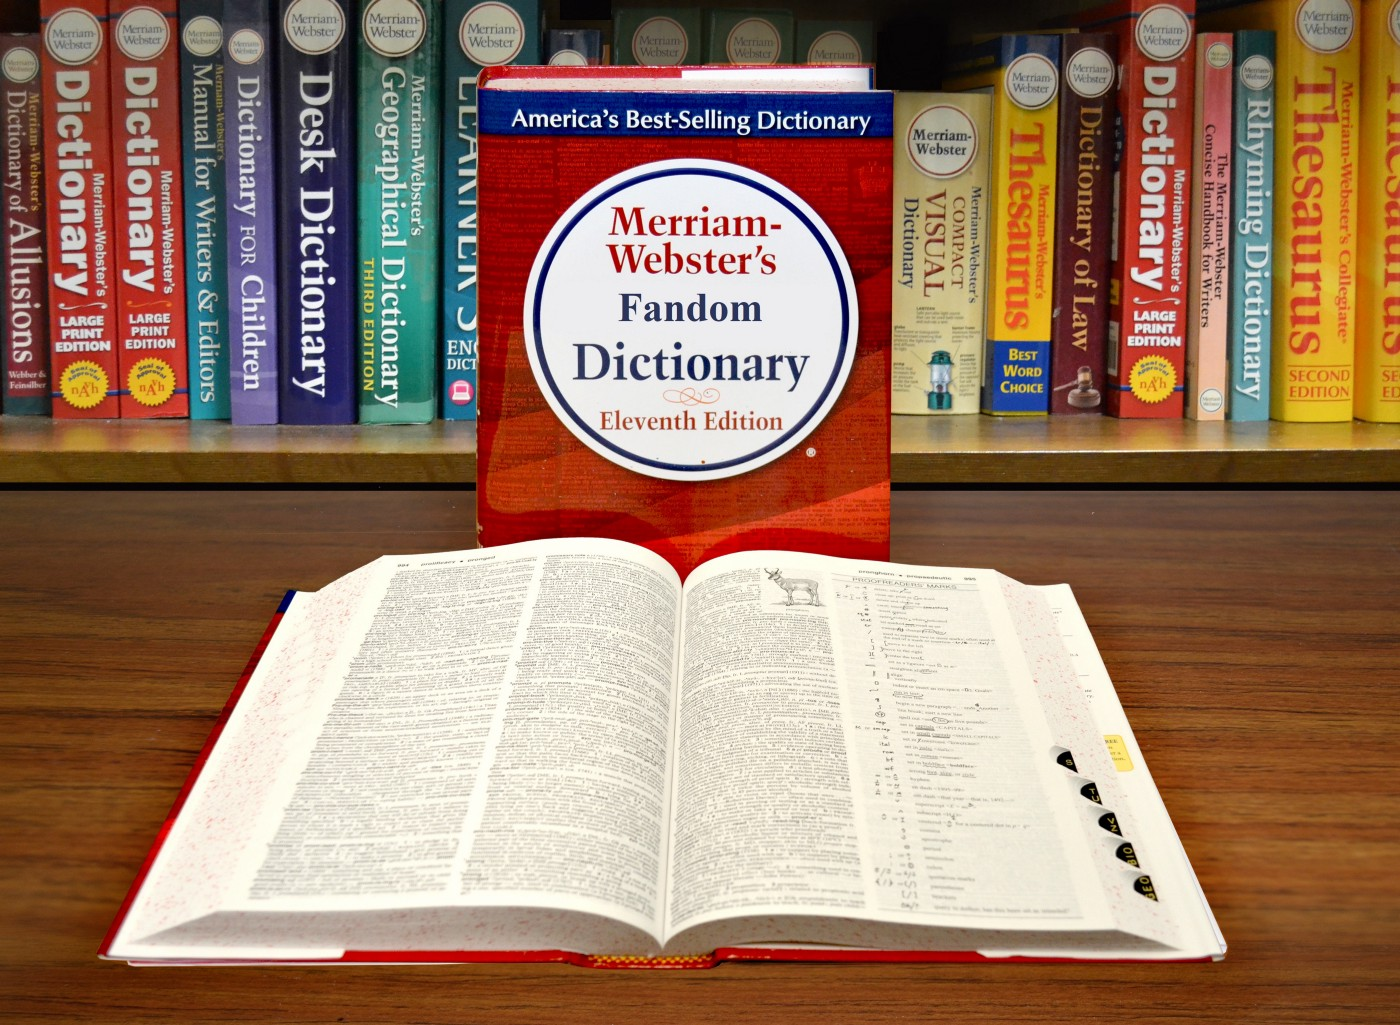 """Two dictionaries, one standing that reads """"Merriam-Webster's Fandom Dictionary"""", one lying open and flat in front of it."""